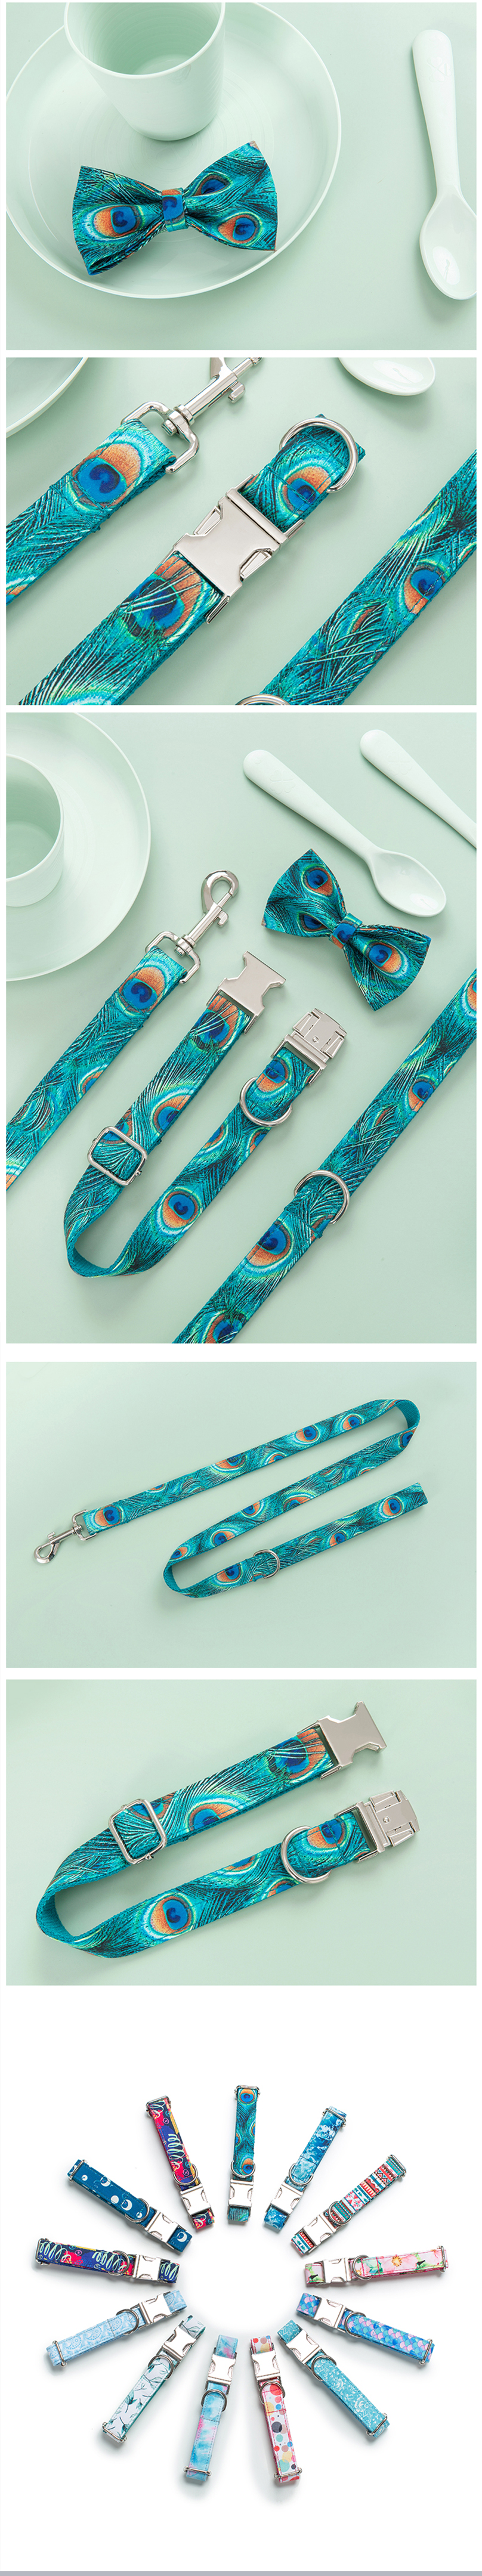 Shenzhen manufacturer OEM/ODM high quality pet products supplies innovative peacock personalized dog collar leashes